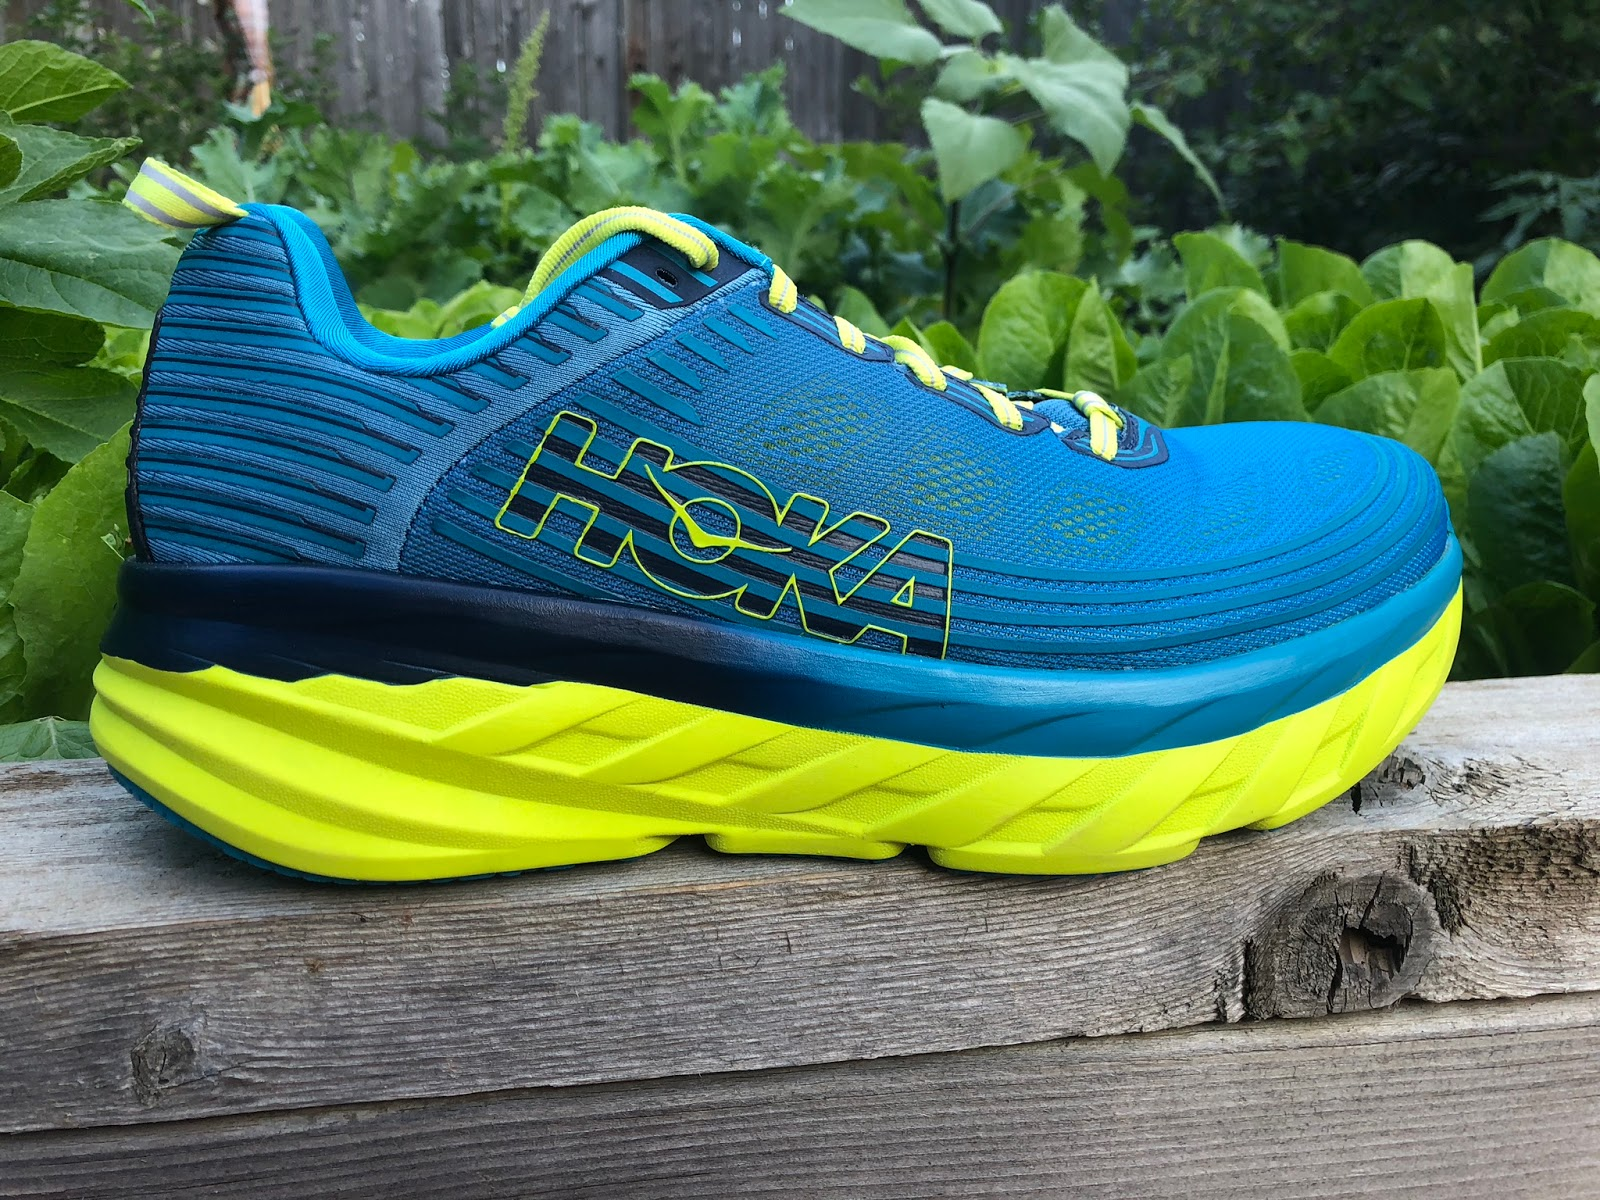 100433622bd4 Hoka One One Bondi 6 Review - Subtle Updates to a Tried and True Maximal  Road Cruiser